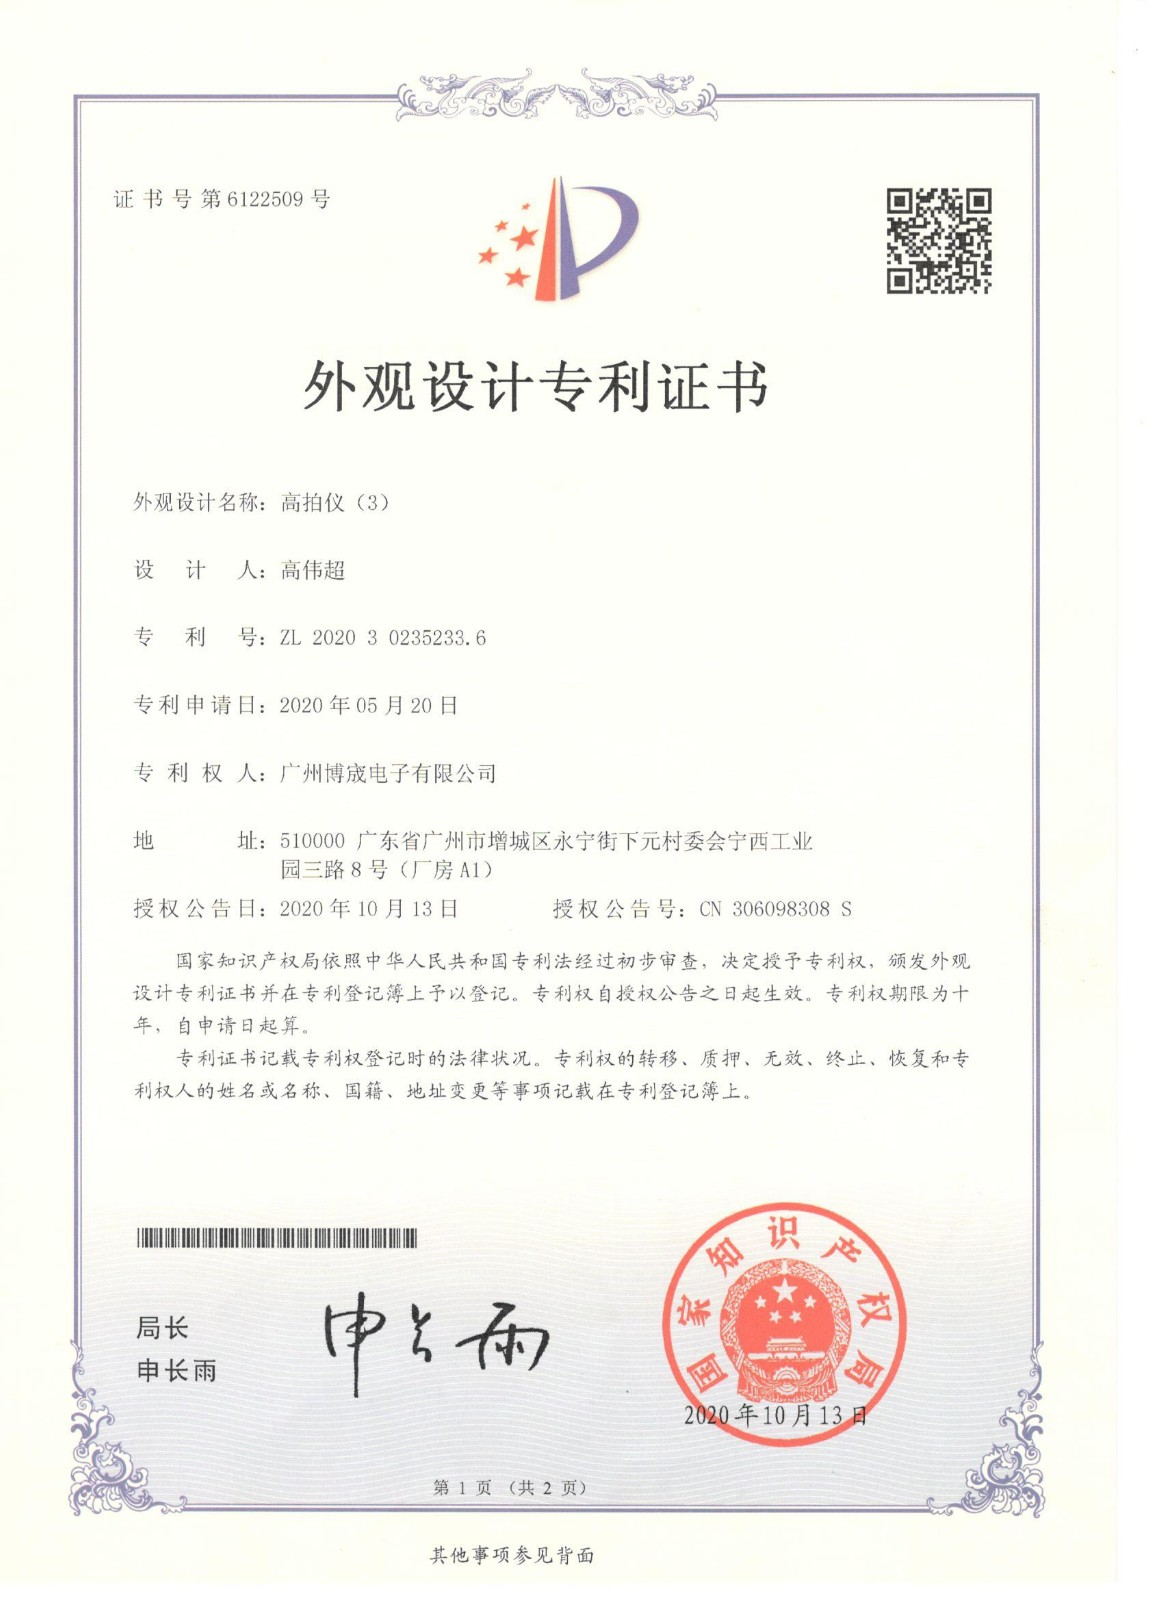 Appearance patent certificate 3